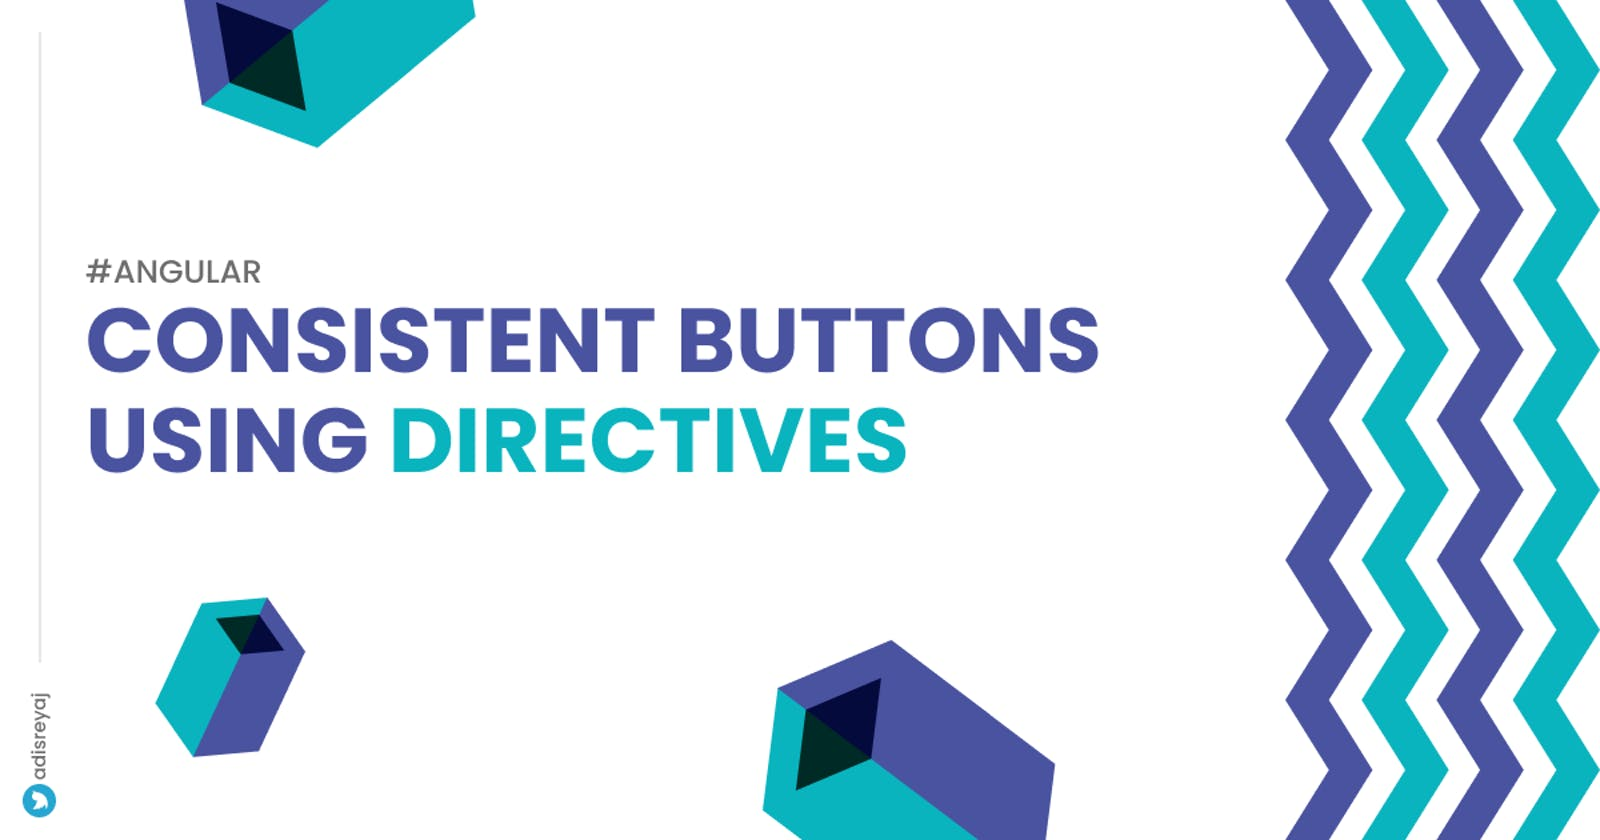 Consistent buttons using directives in Angular